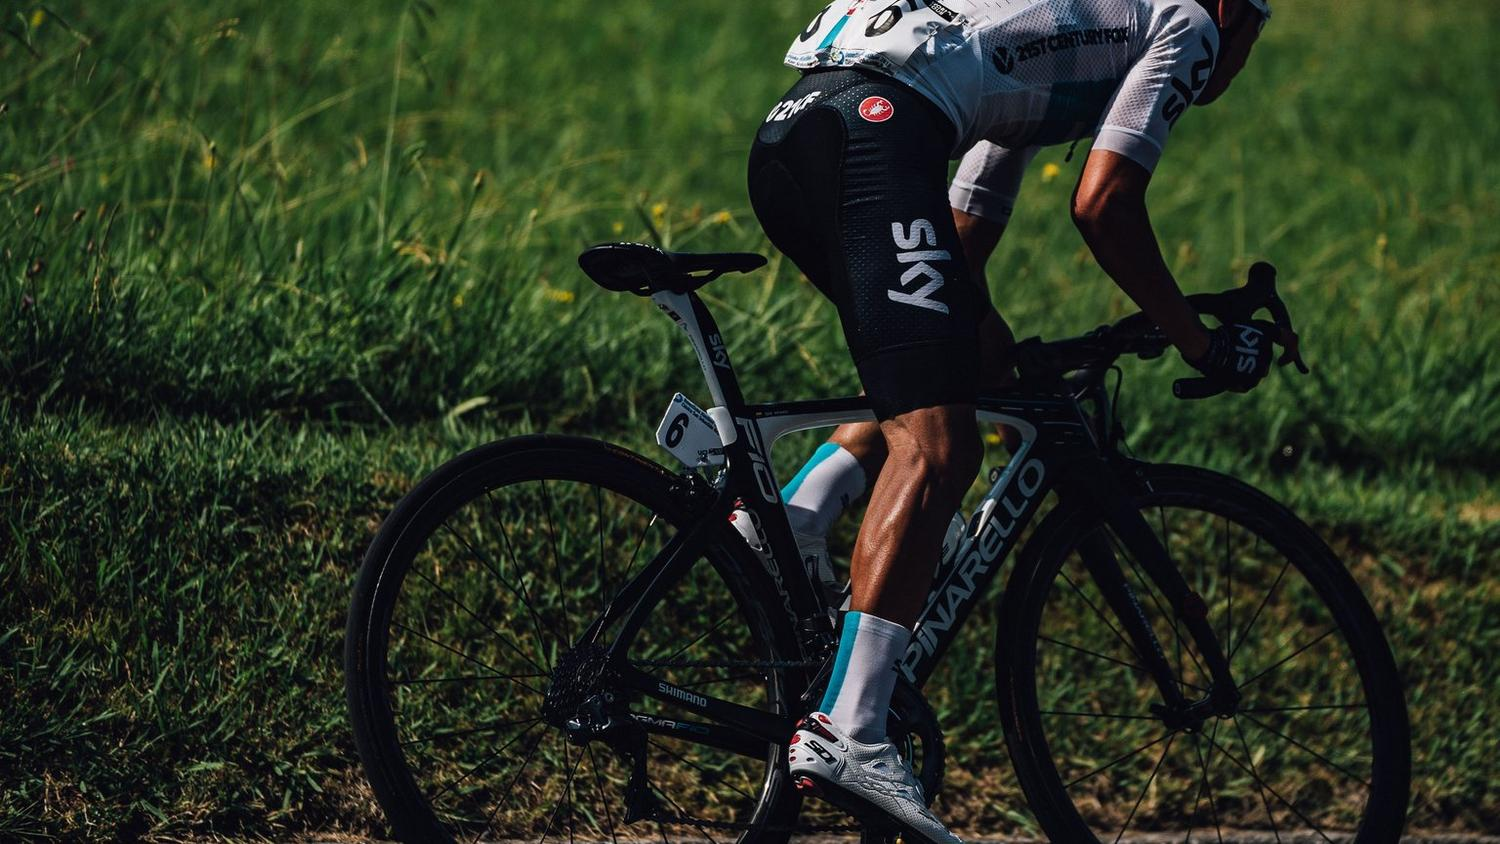 As Sky calls time on professional cycling, Jeremy Whittle reflects on the state of a sport suddenly left without its dominant force – and the long descent that looms after Britain's climb to the top of WorldTour.